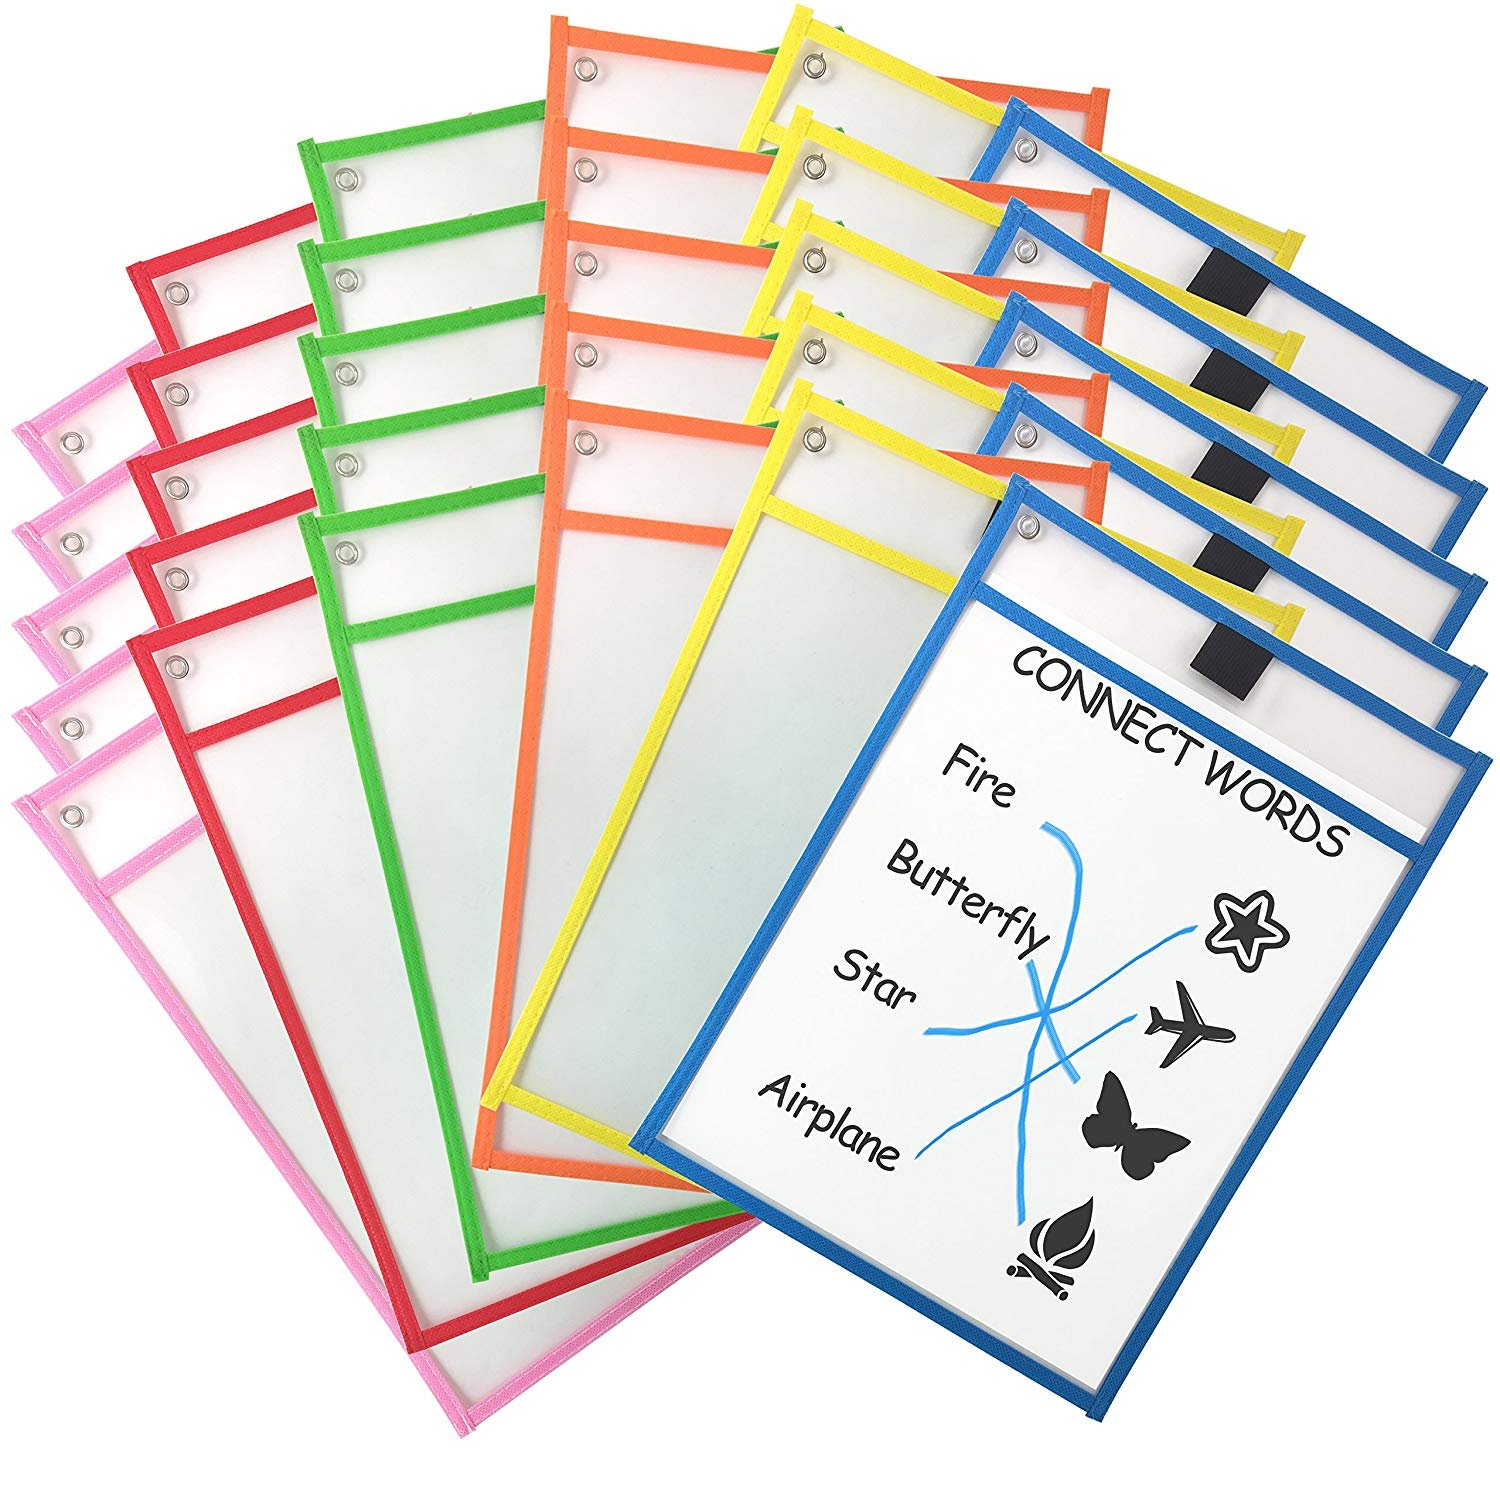 Dry Erase Pockets Worksheet Sleeves Oversize 10'' x 13'', Perfect for Classroom Organization, Reusable Dry Erase Pockets Assorted Color Teaching Supplies (30 Pack)